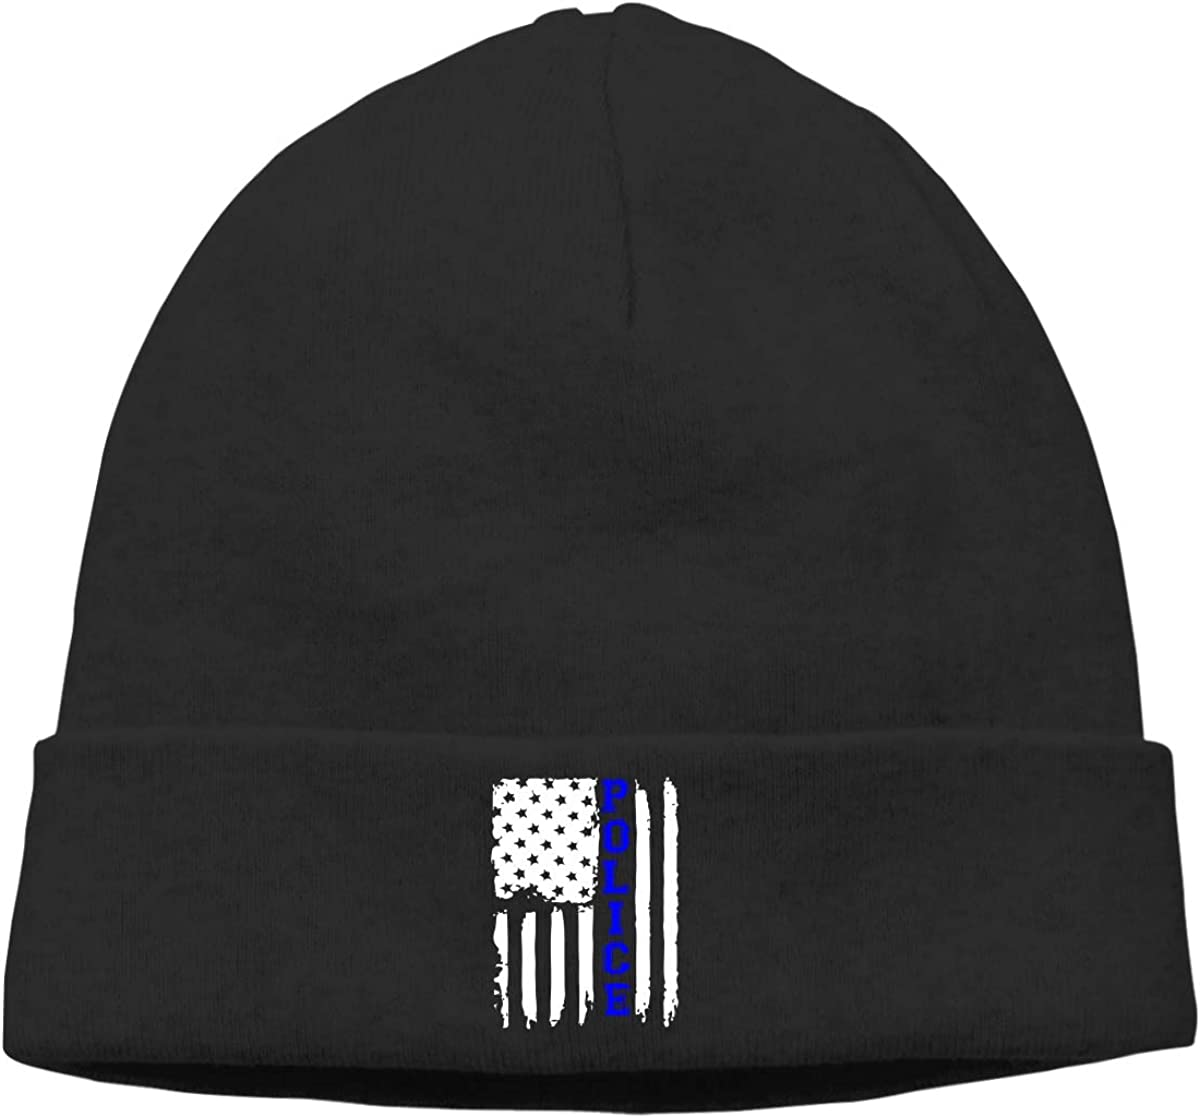 Police Flag Women Men Solid Color Beanie Hat Stretchy /& Soft Winter Cap Thin